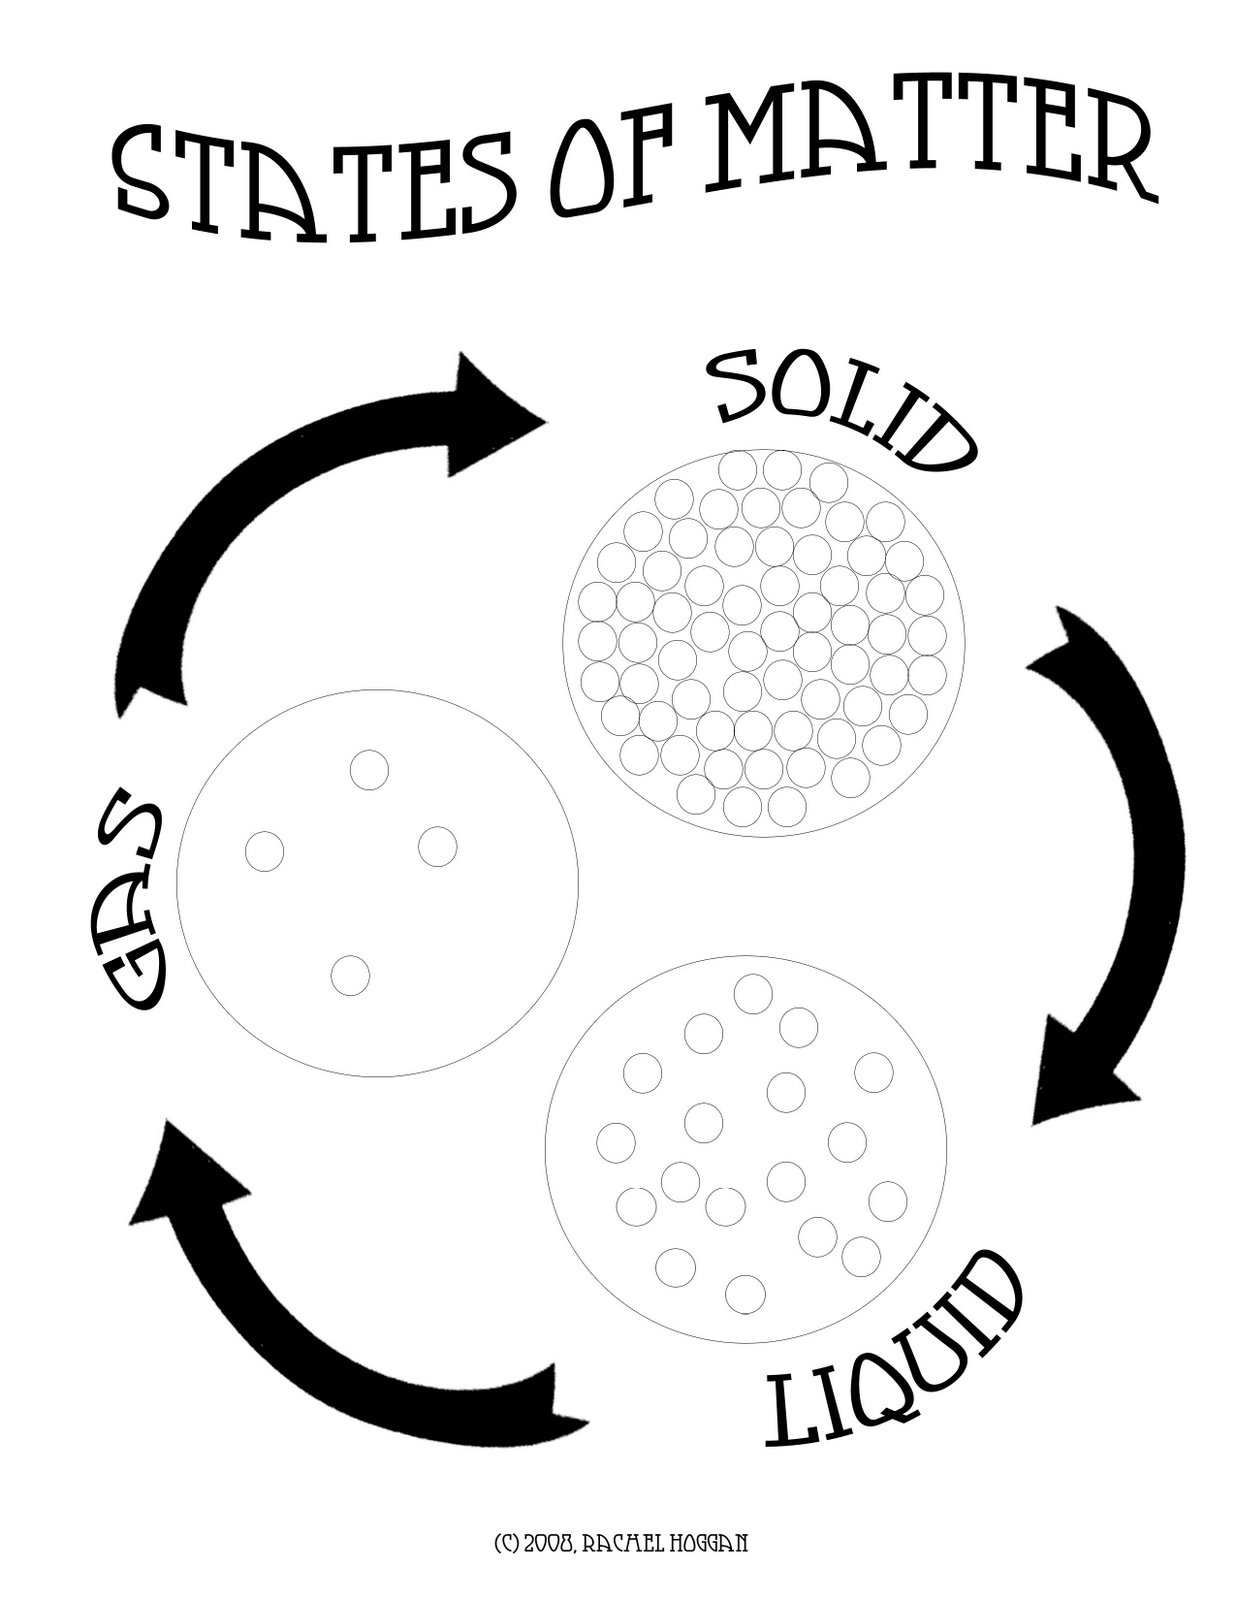 States Of Matter Solids Liquids Gas Printable Sketch ...